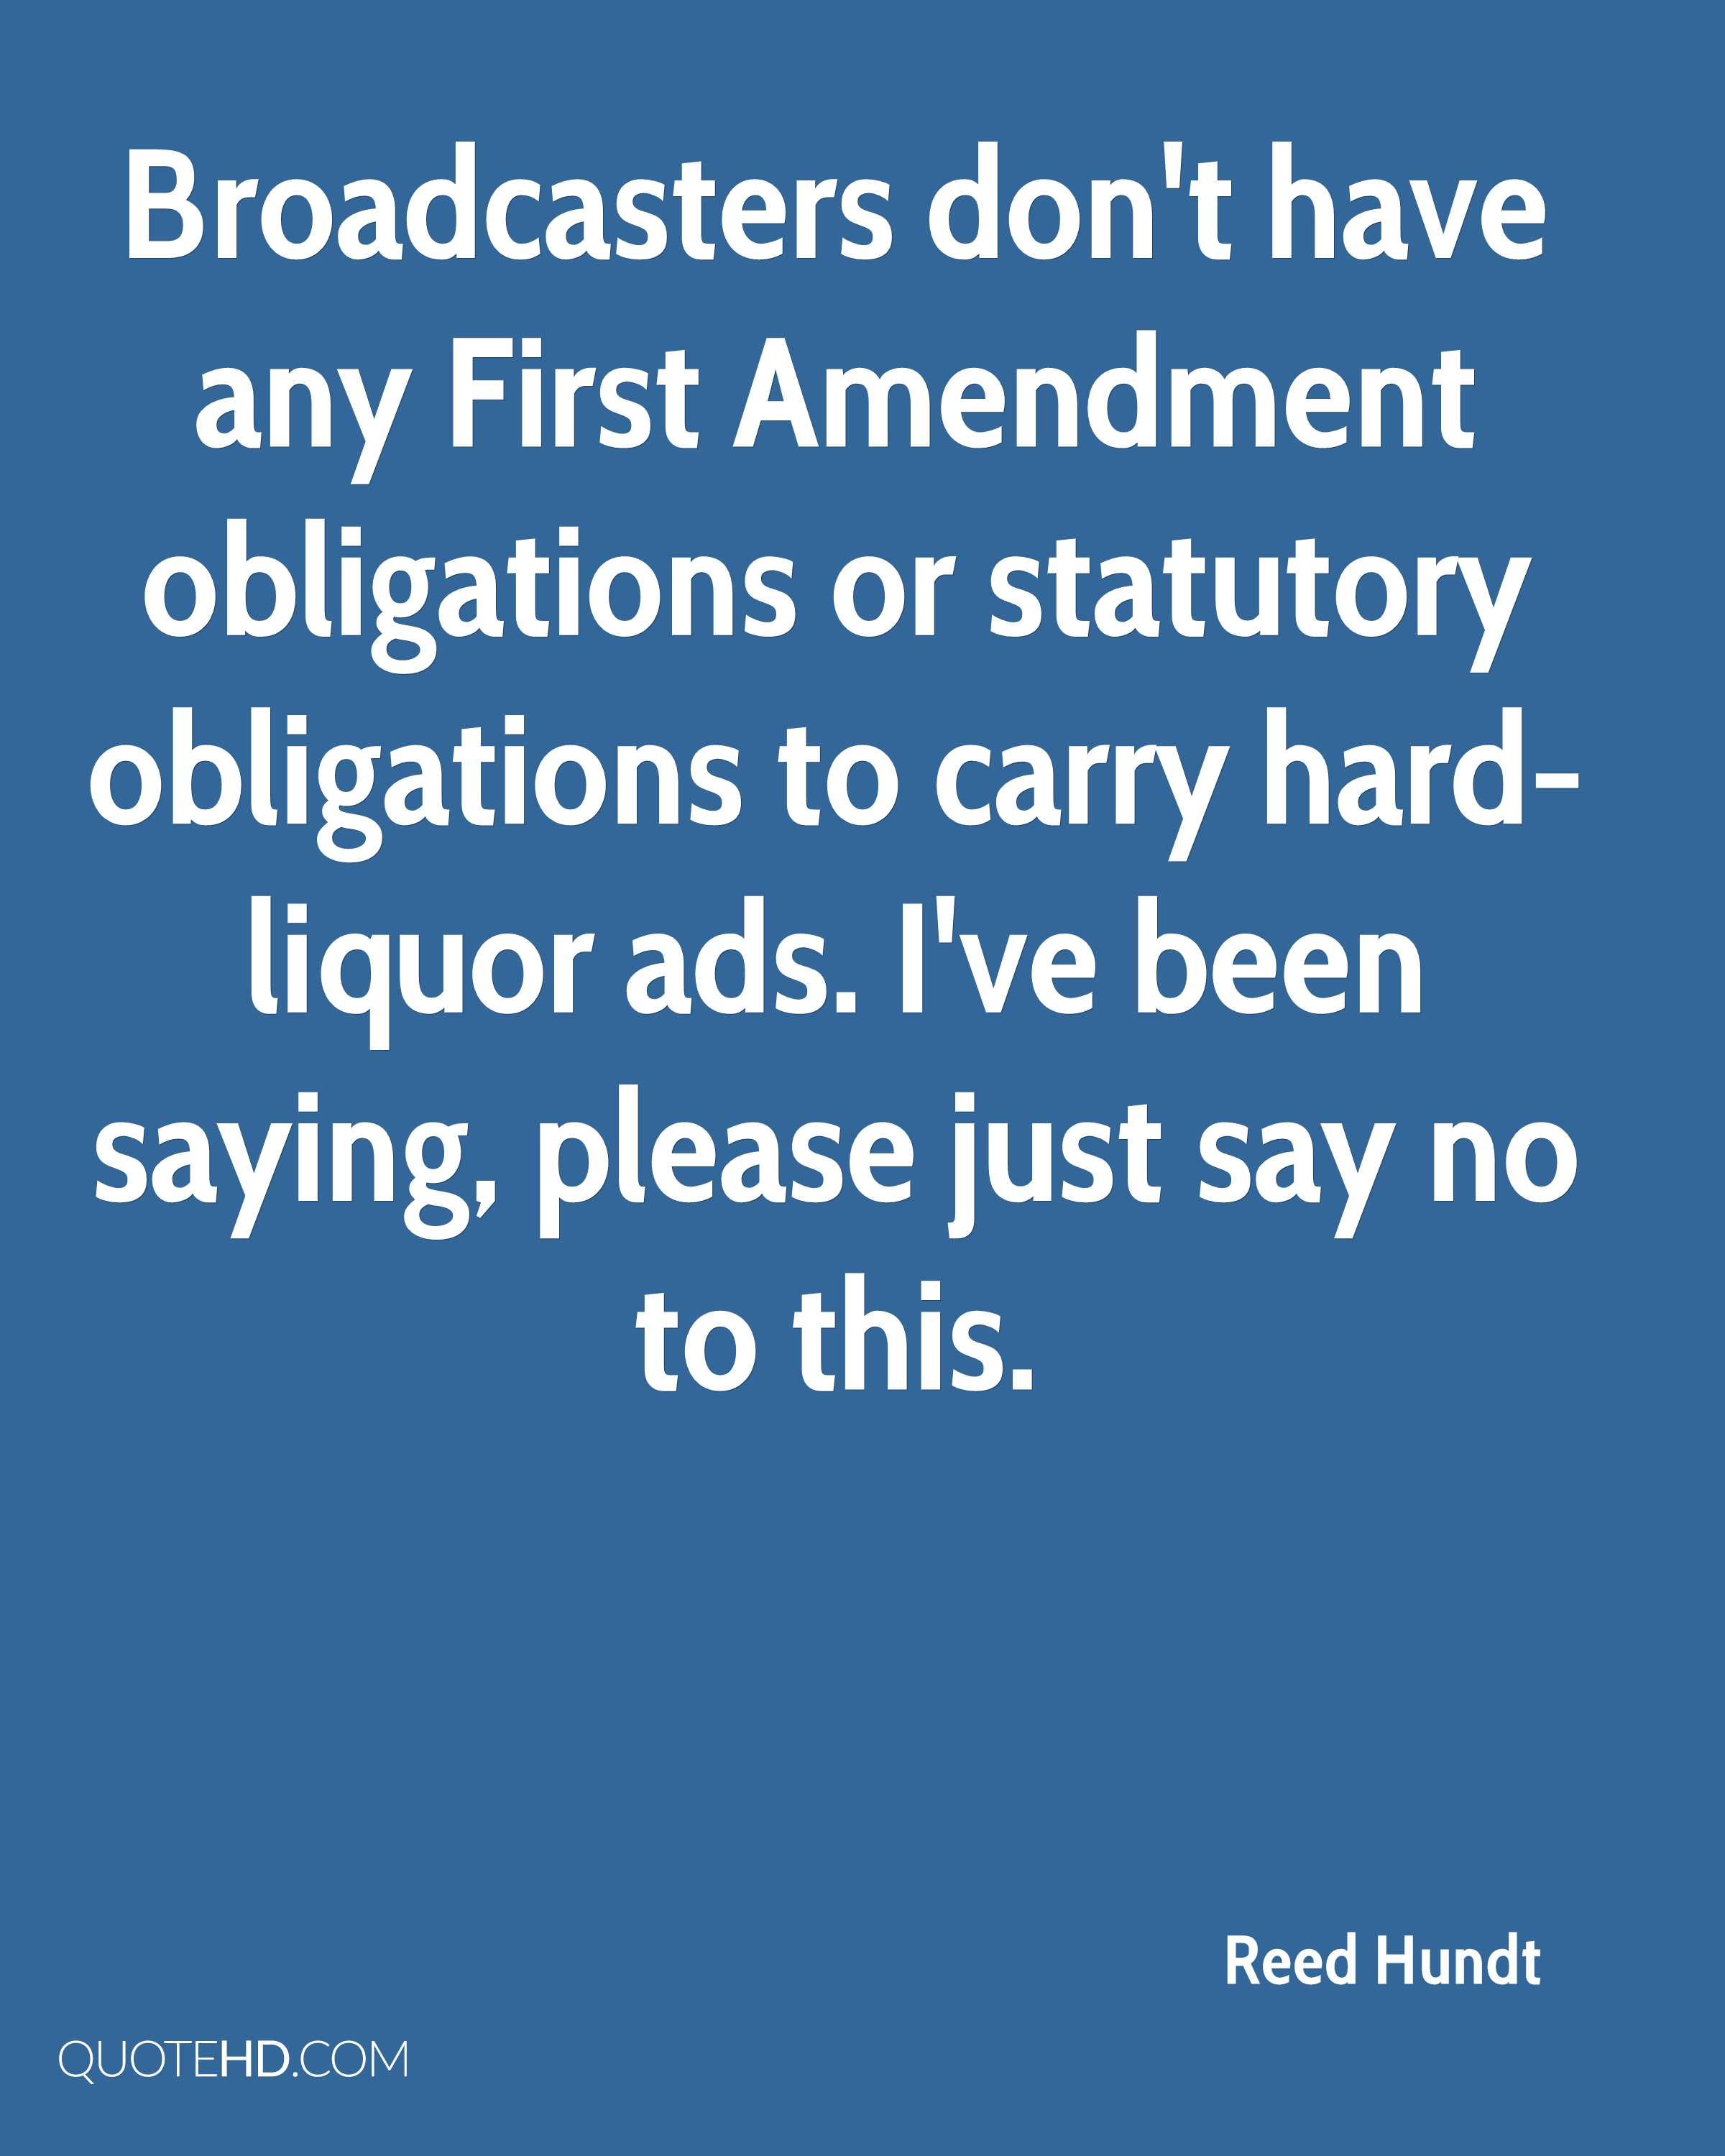 Broadcasters don't have any First Amendment obligations or statutory obligations to carry hard-liquor ads. I've been saying, please just say no to this.